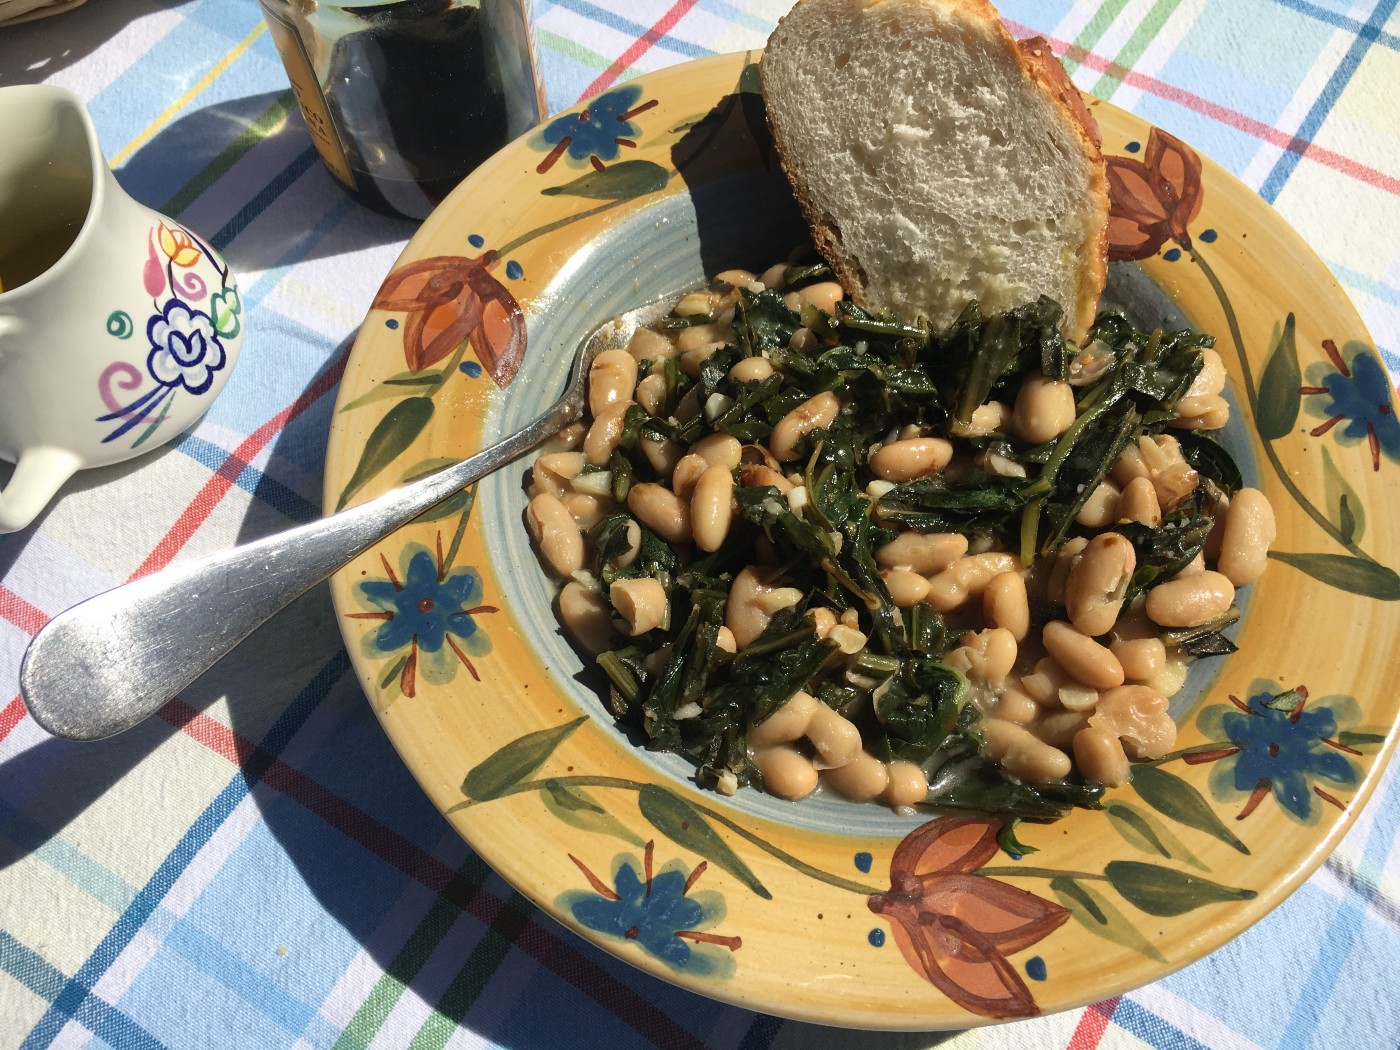 Dandelion greens and cannellini beans in a floral dish, served with a slice of crusty bread.